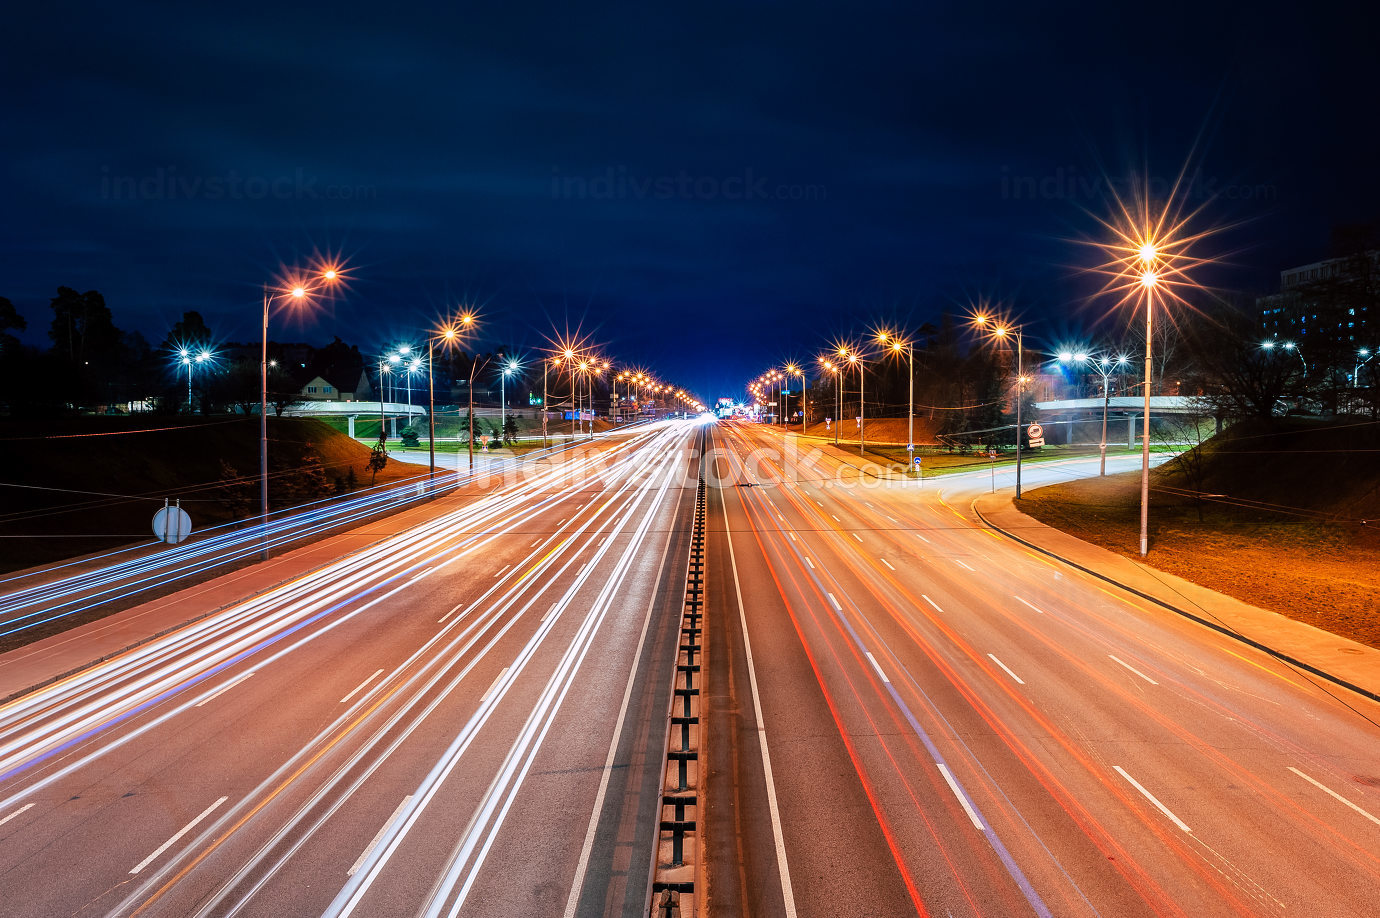 bright lights from cars and street lamps on the highway at night